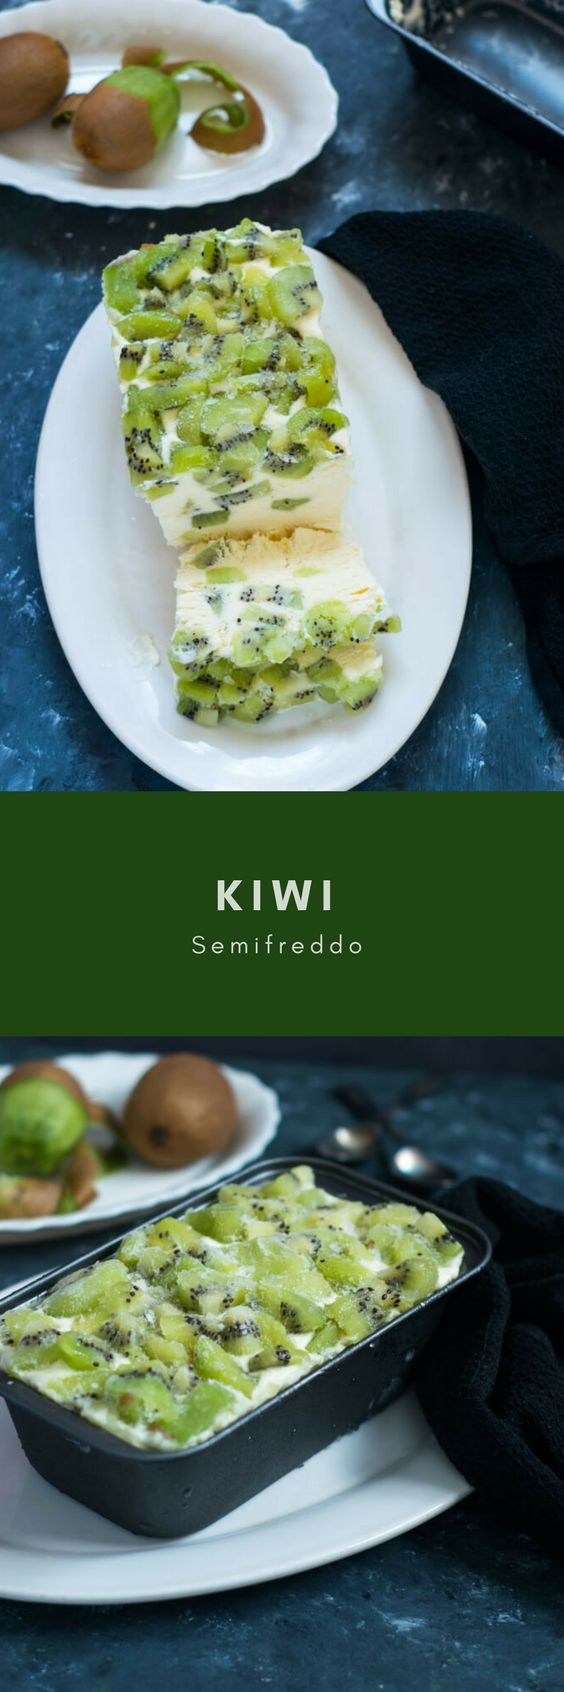 || Kiwi Semifreddo is a very creamy soft and delicious, gluten-free frozen dessert made with kiwis, cream and vanilla custard. So what exactly is a semifreddo, well it is nothing fancy but an Italian semi froze dessert more or less like an ice cream? It is often made with cream and eggs and supposes to …